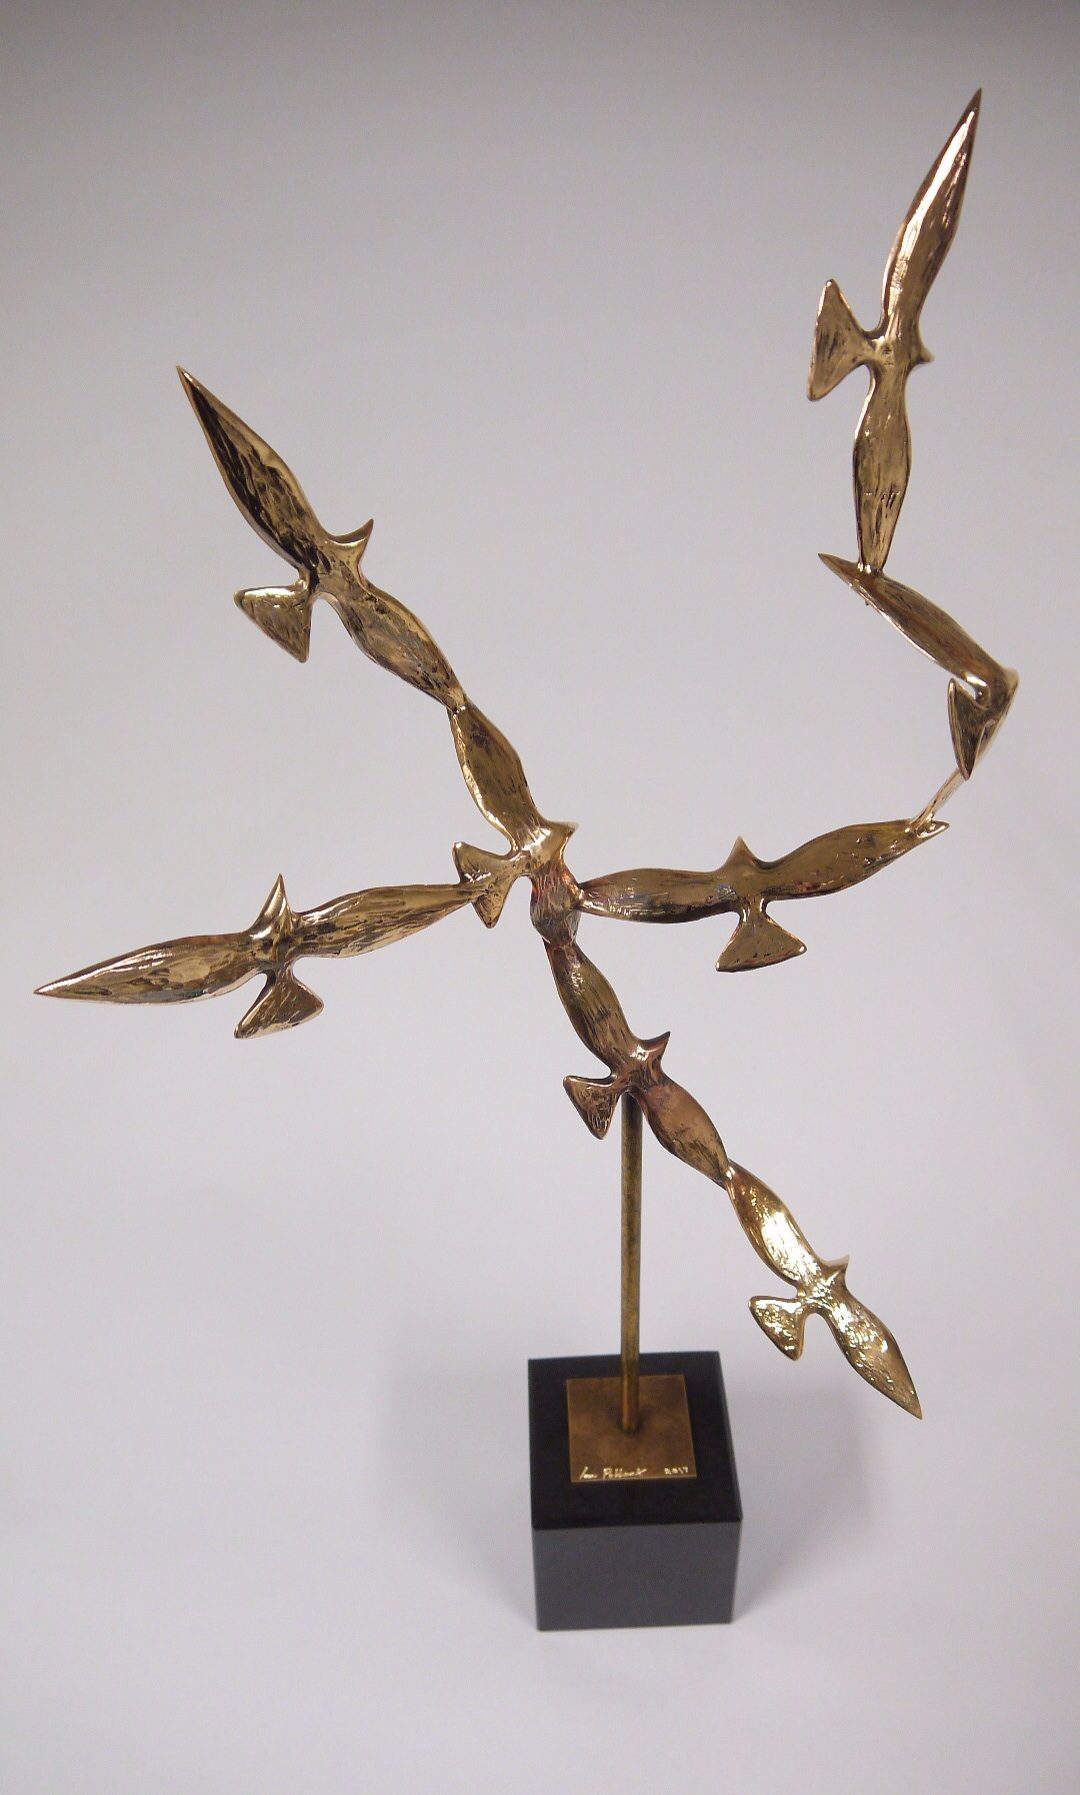 Ian Pollock, Golden Birds of the Soul, bronze and black polished granite, unique, 67 x 30 x 18cm